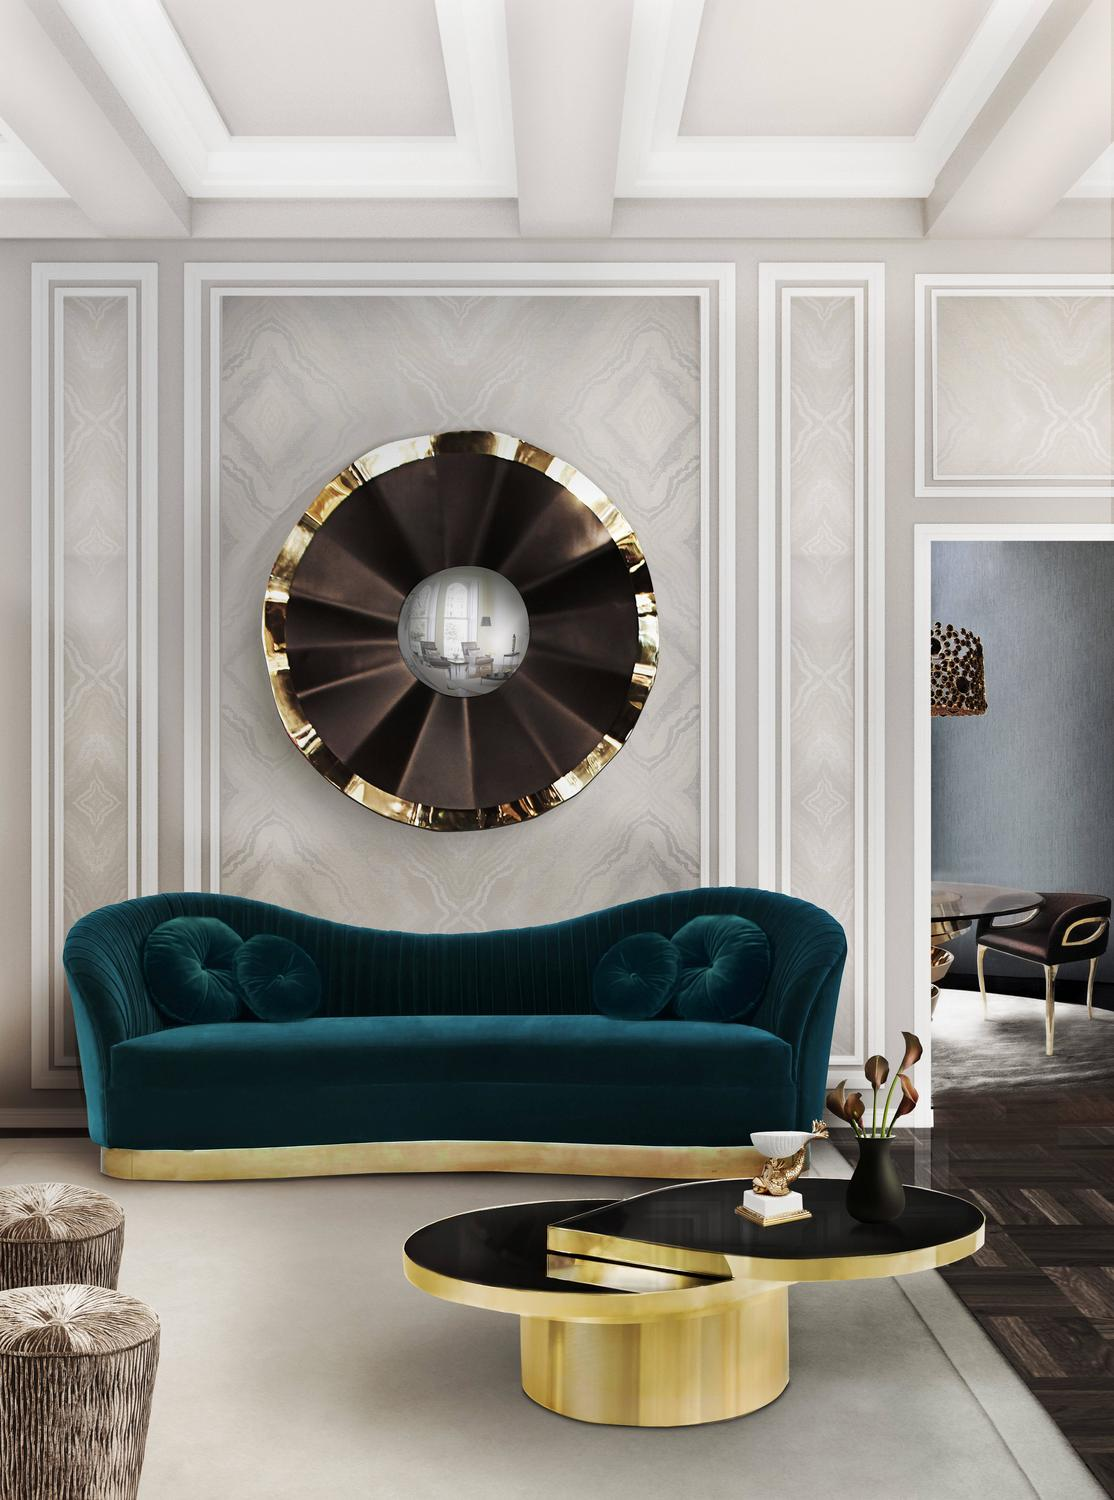 10 Color Trends that will Improve your Living Room Design2 color trends 10 Color Trends that will Improve your Living Room Design 10 Color Trends that will Improve your Living Room Design2